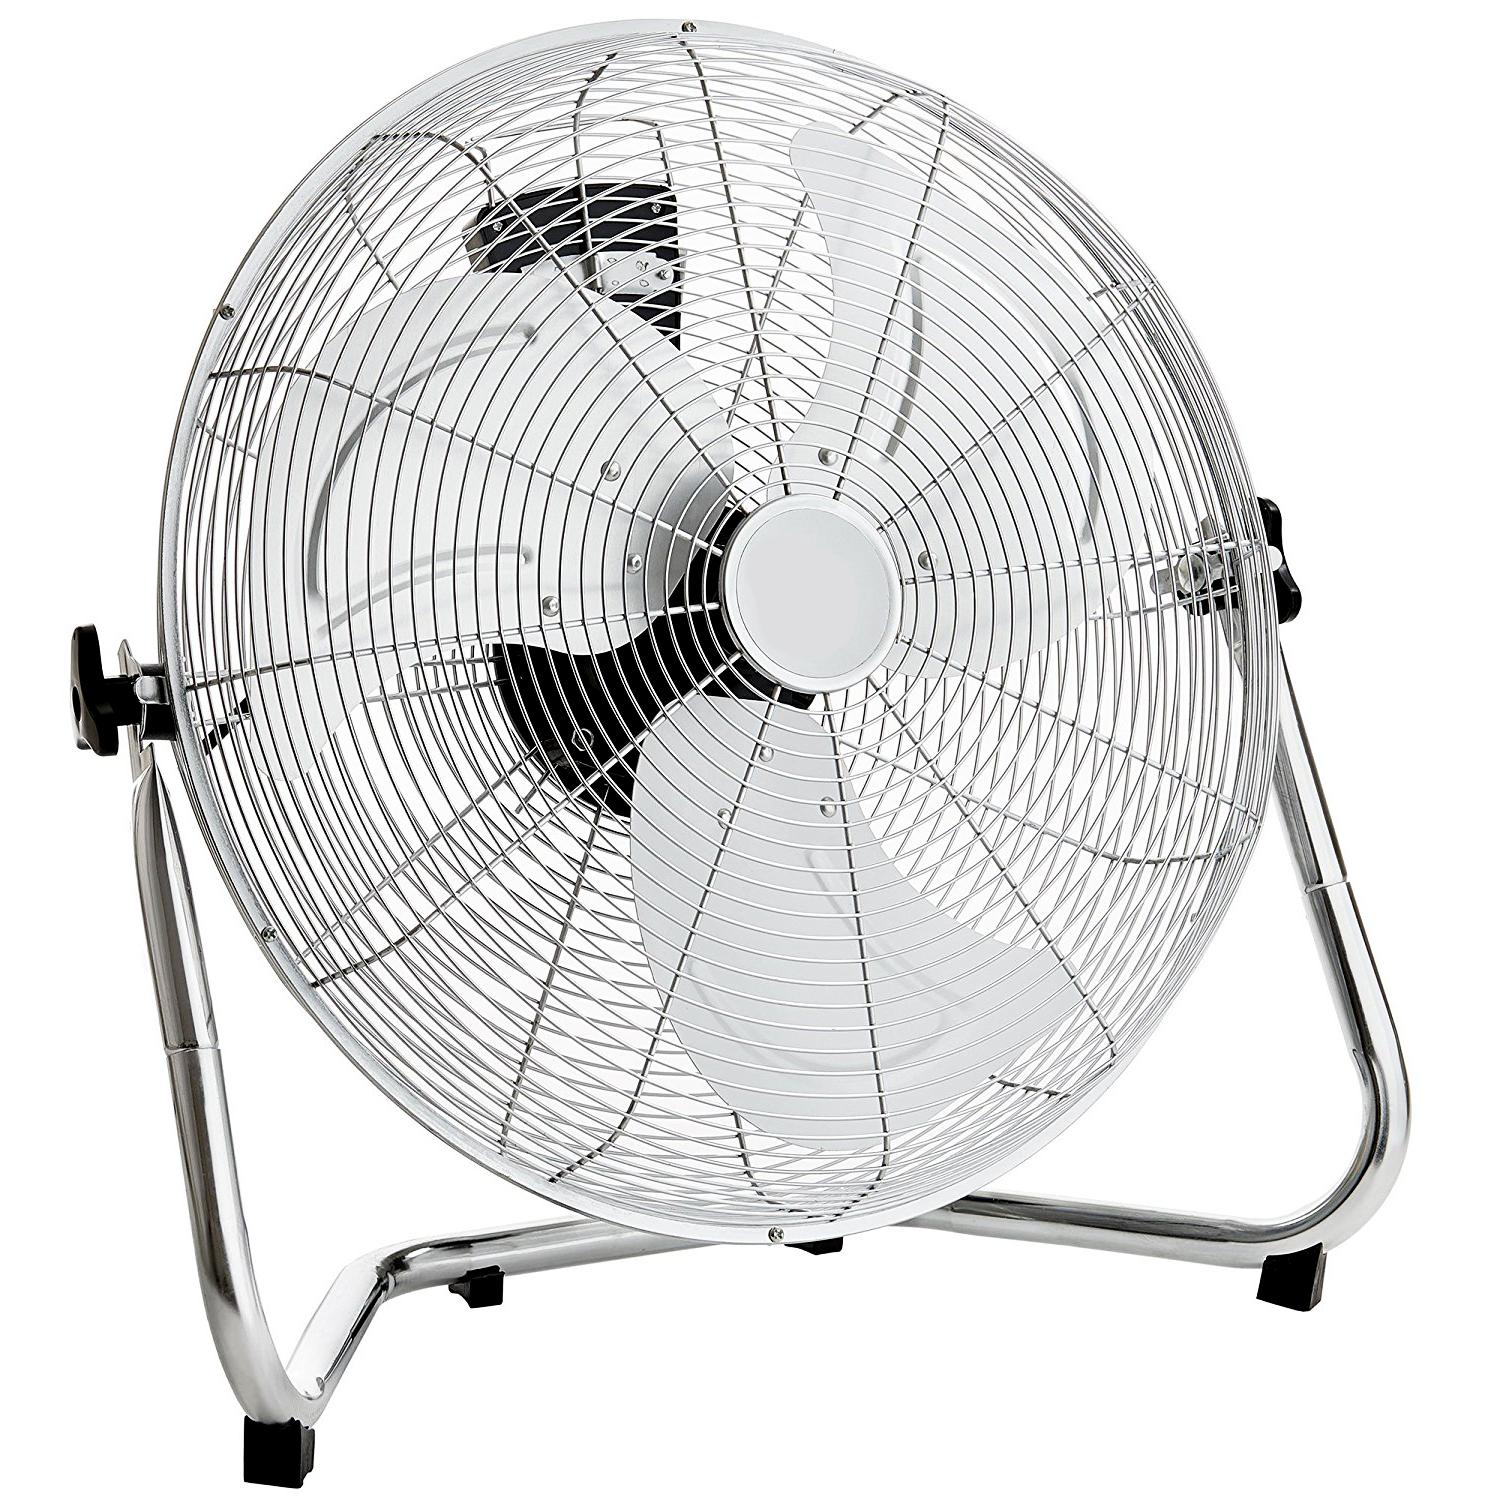 New Air Fans : New quot chrome high velocity industrial speed free